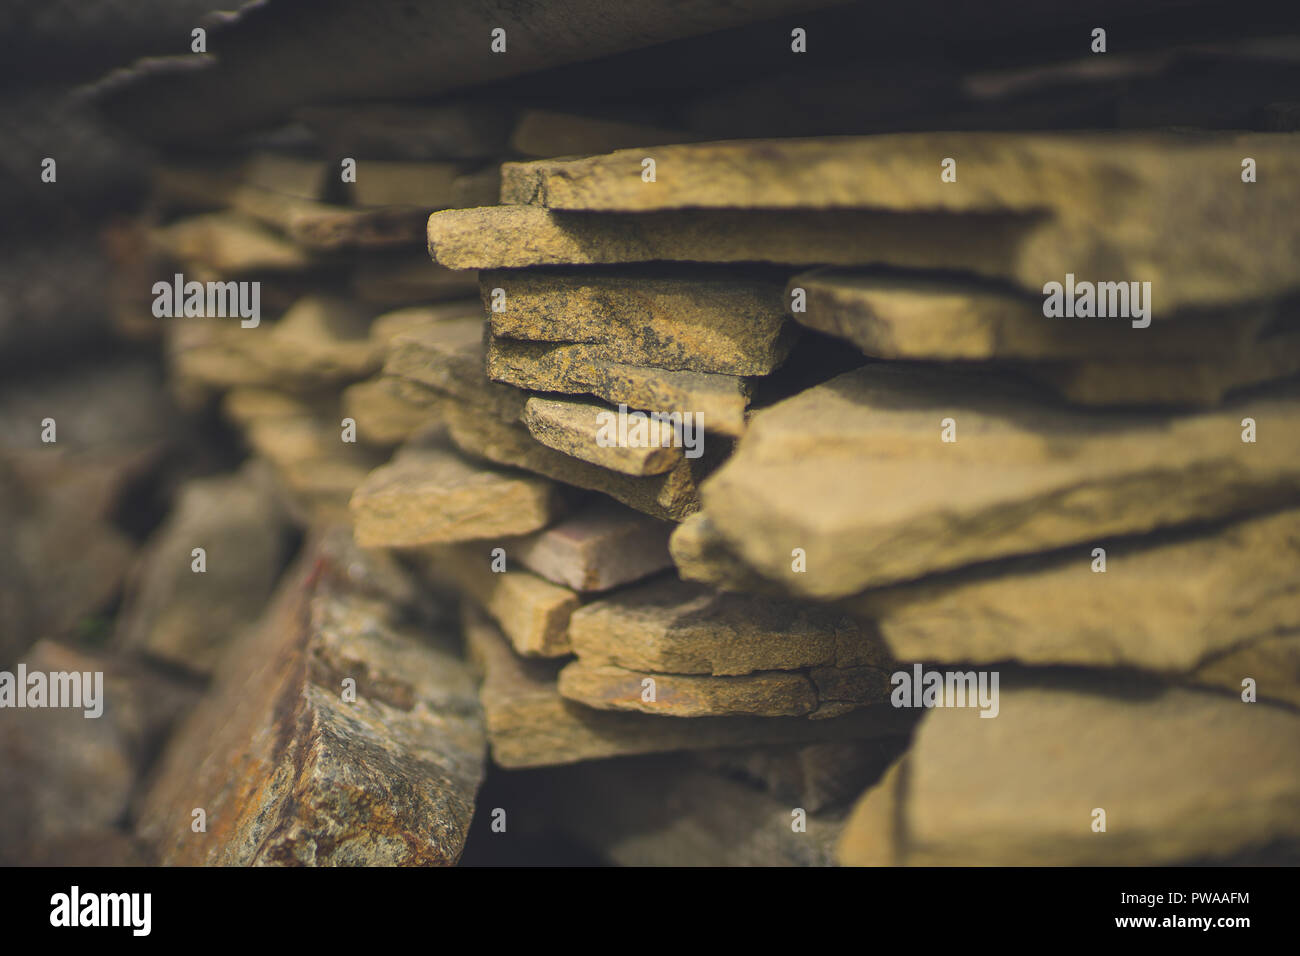 Folded old stone tiles for outdoor use. - Stock Image